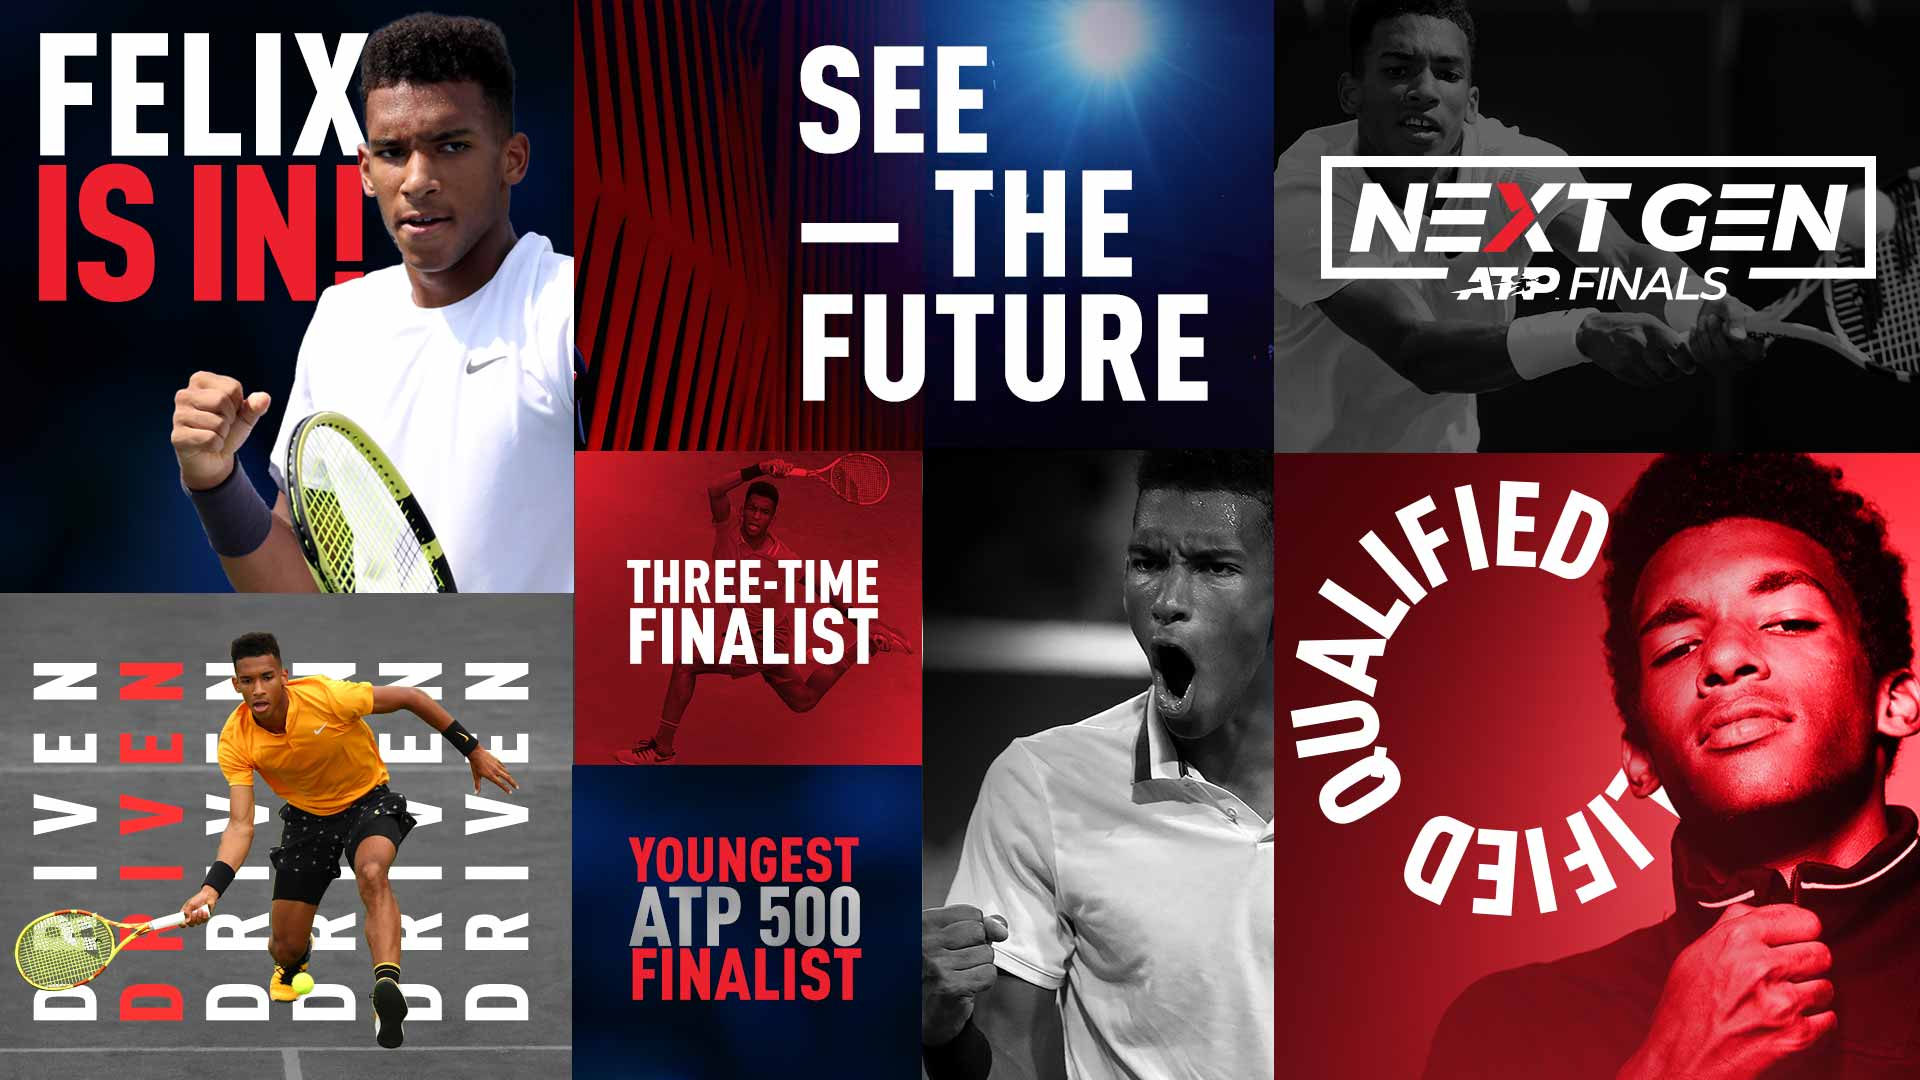 Felix Auger-Aliassime is heading to the 2019 Next Gen ATP Finals in Milan.